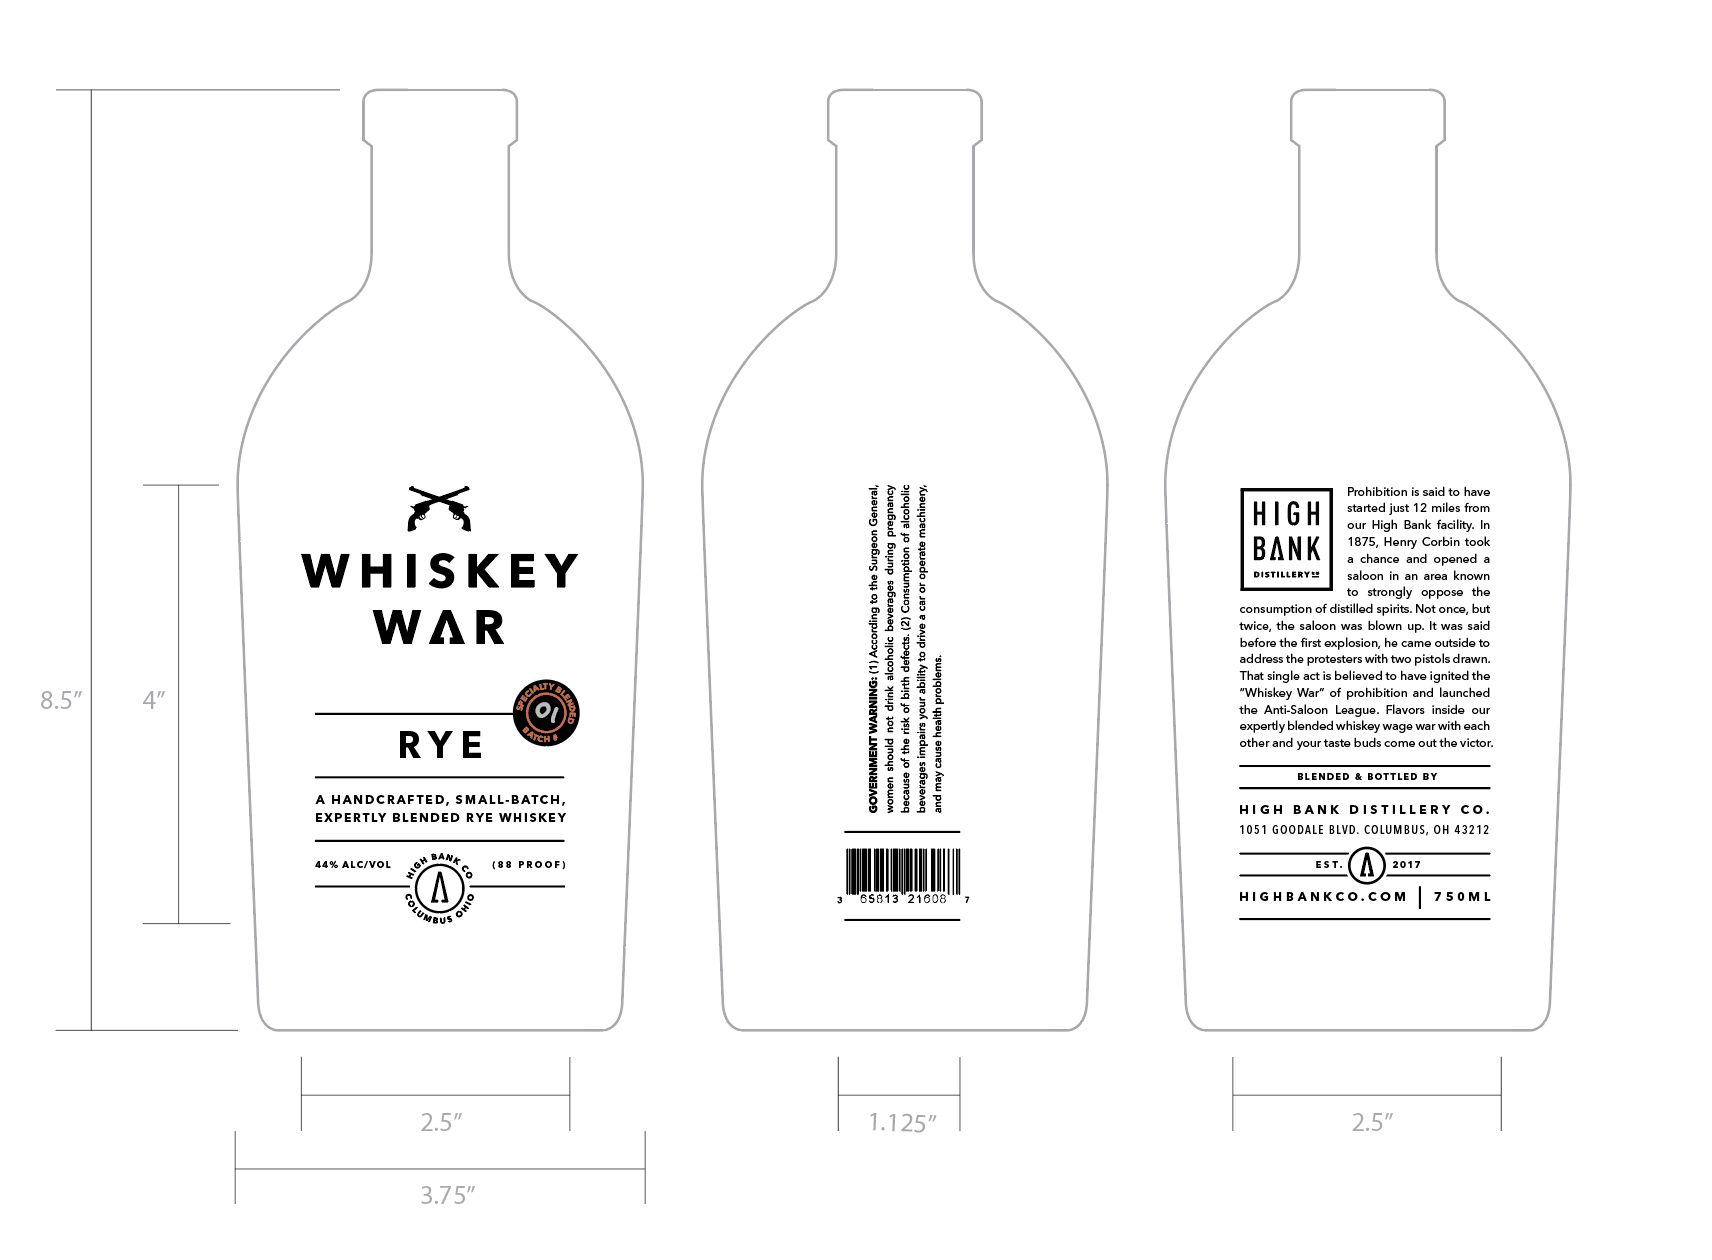 Whiskey War is a blended rye heavy mash whiskey from High Bank Distillery Co. in Columbus, OH.